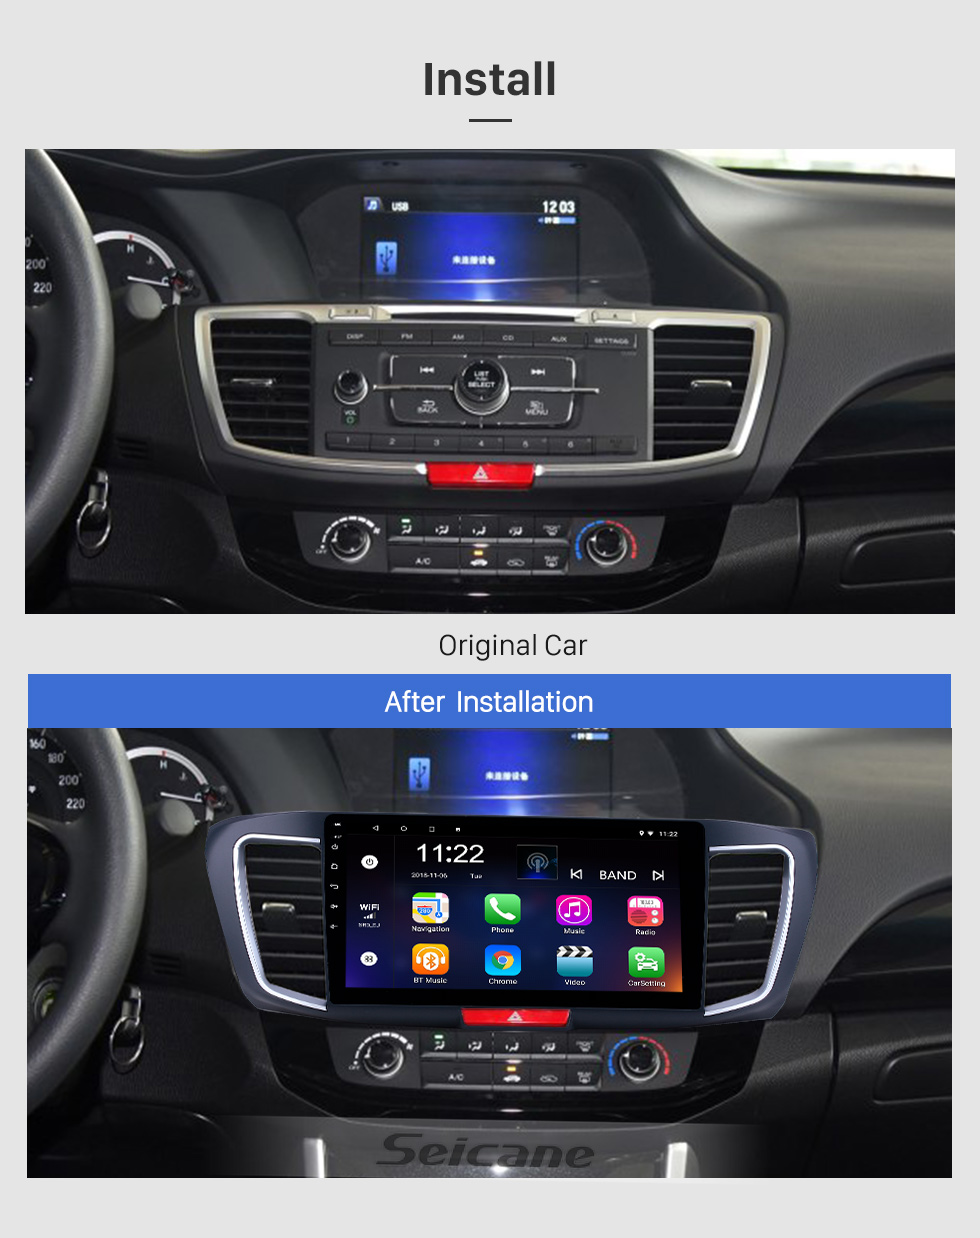 Seicane 10,1 pouces Android 9.0 Radio de navigation GPS pour 2013 Honda Accord 9 Version Basse Bluetooth HD à écran tactile WIFI Support de Carplay caméra de recul